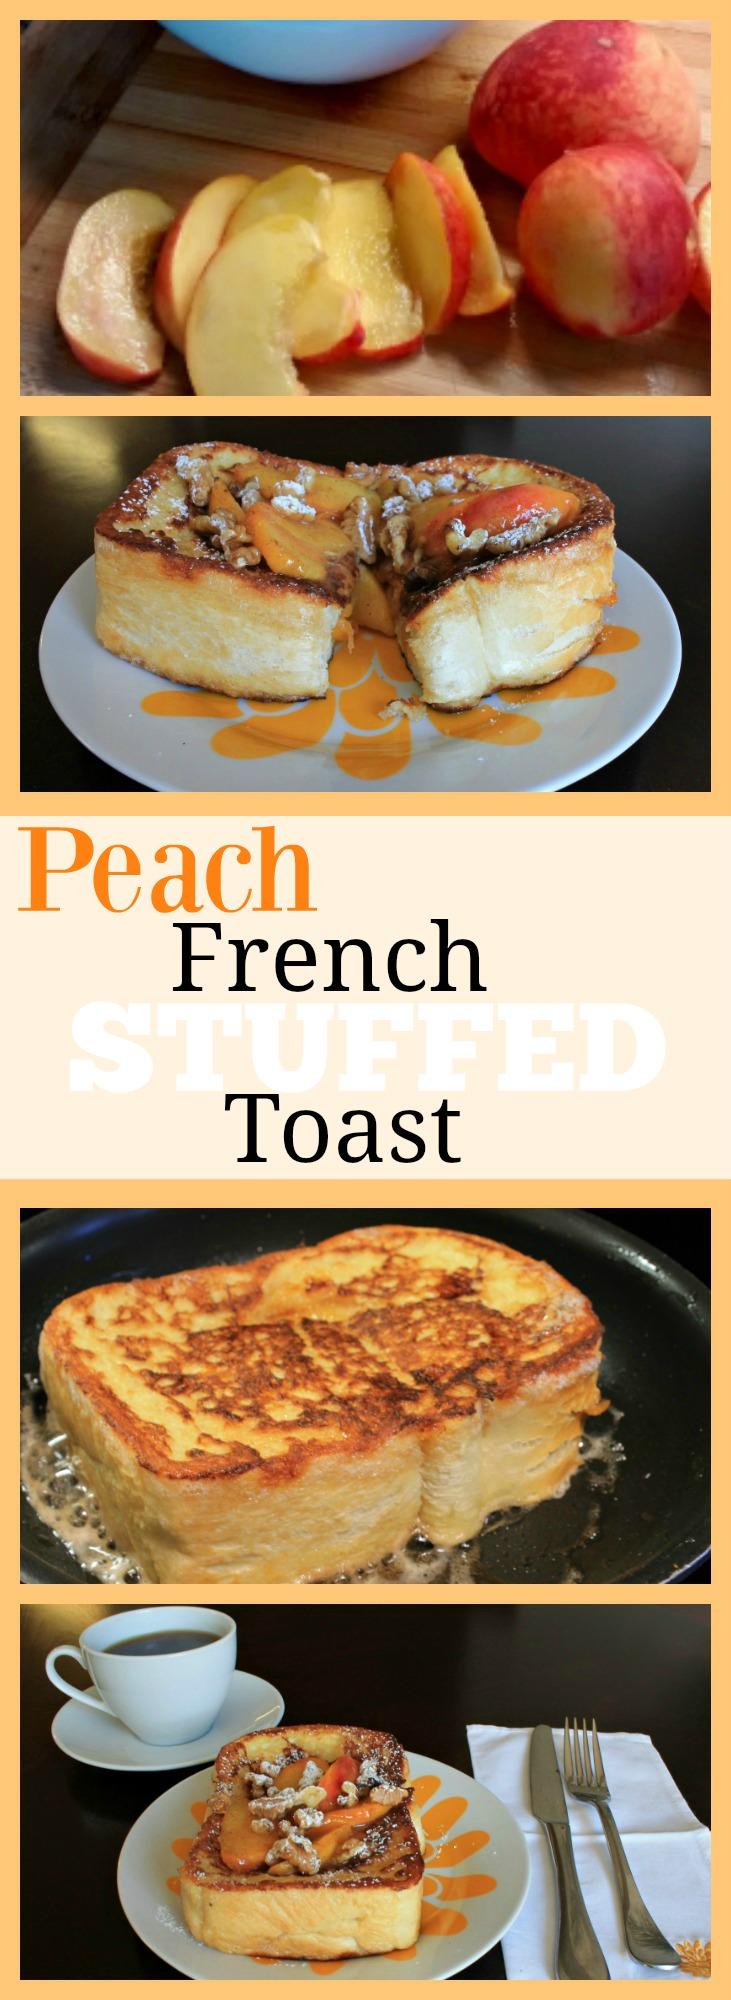 Peach Stuffed French Toast Recipe - Foodie Friday - The Olive Blogger